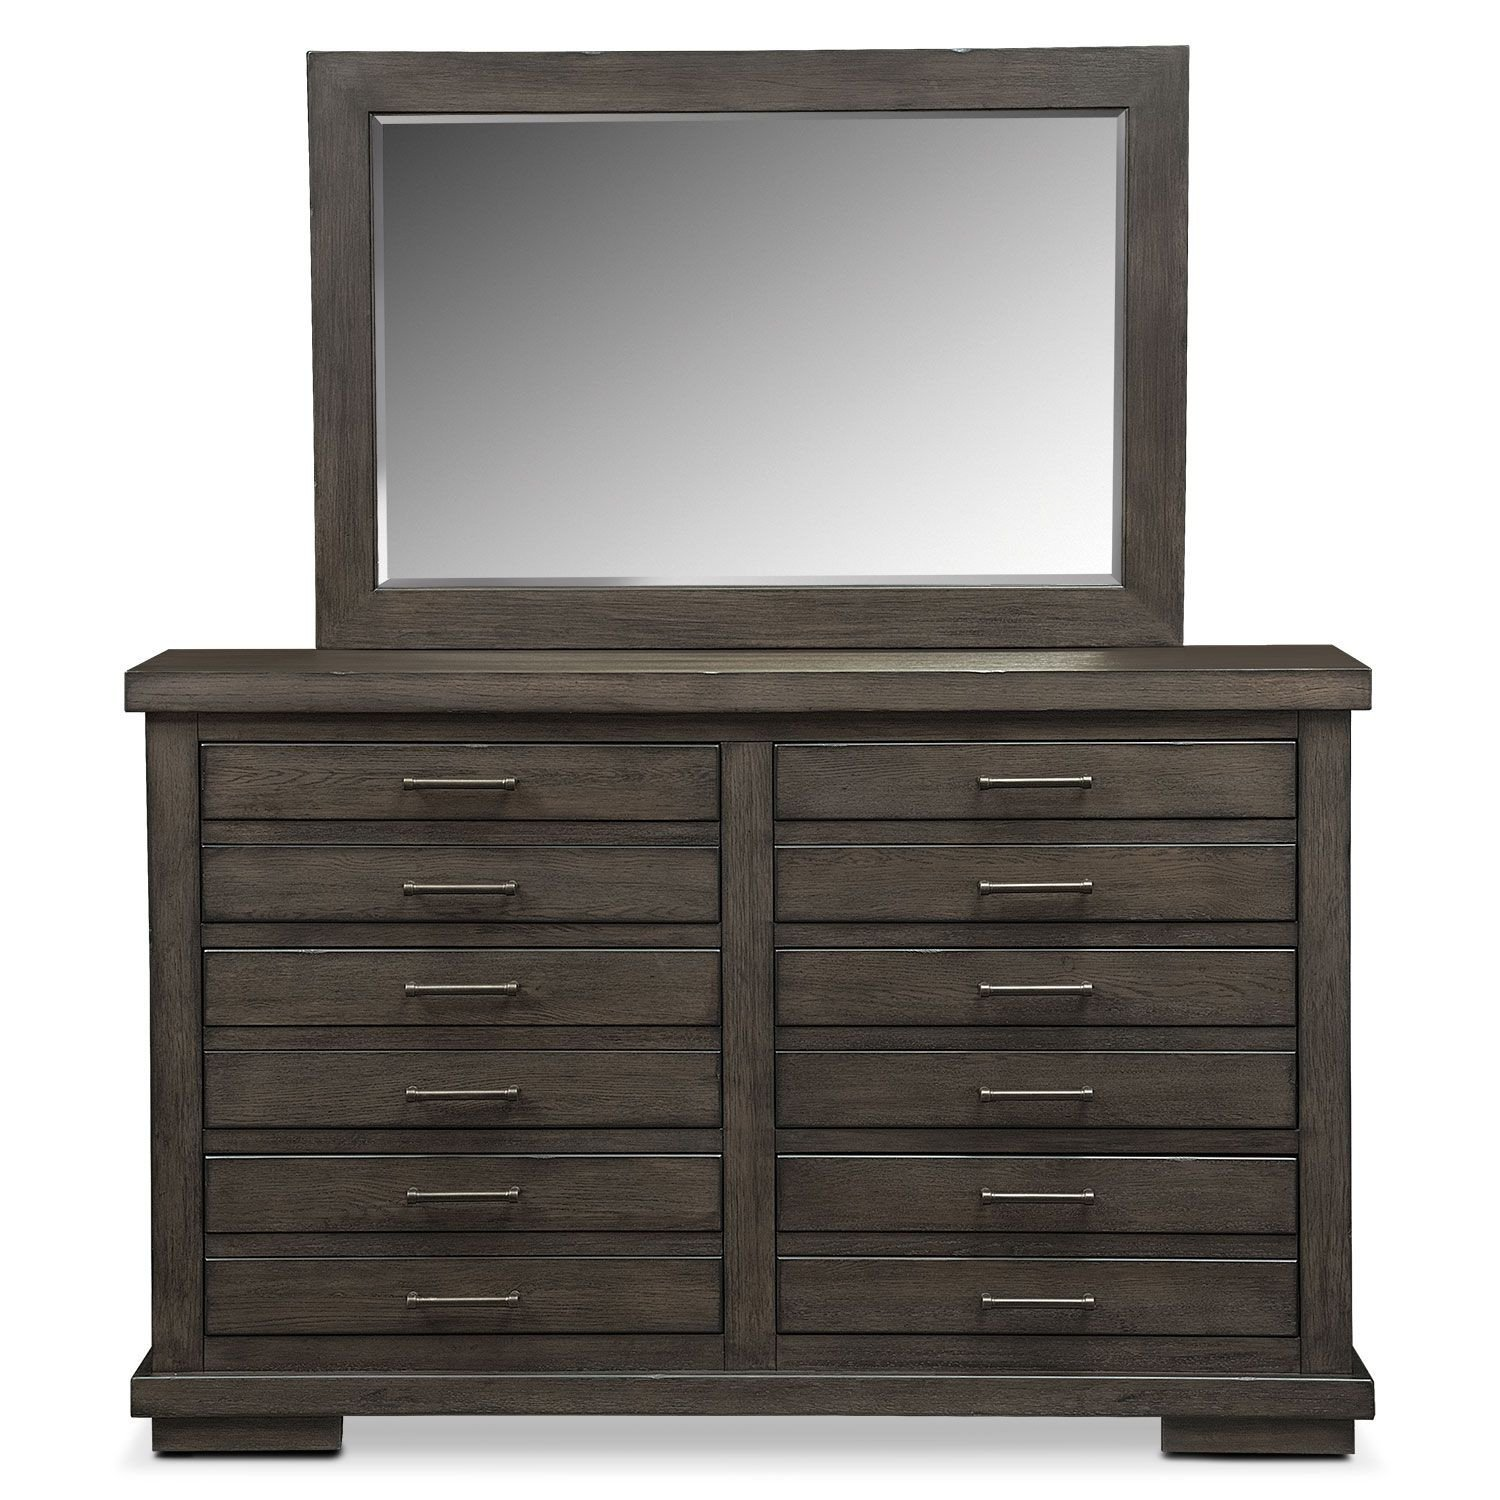 Value City Bedroom Set On Sale Inspirational Jamestown Dresser and Mirror Sable